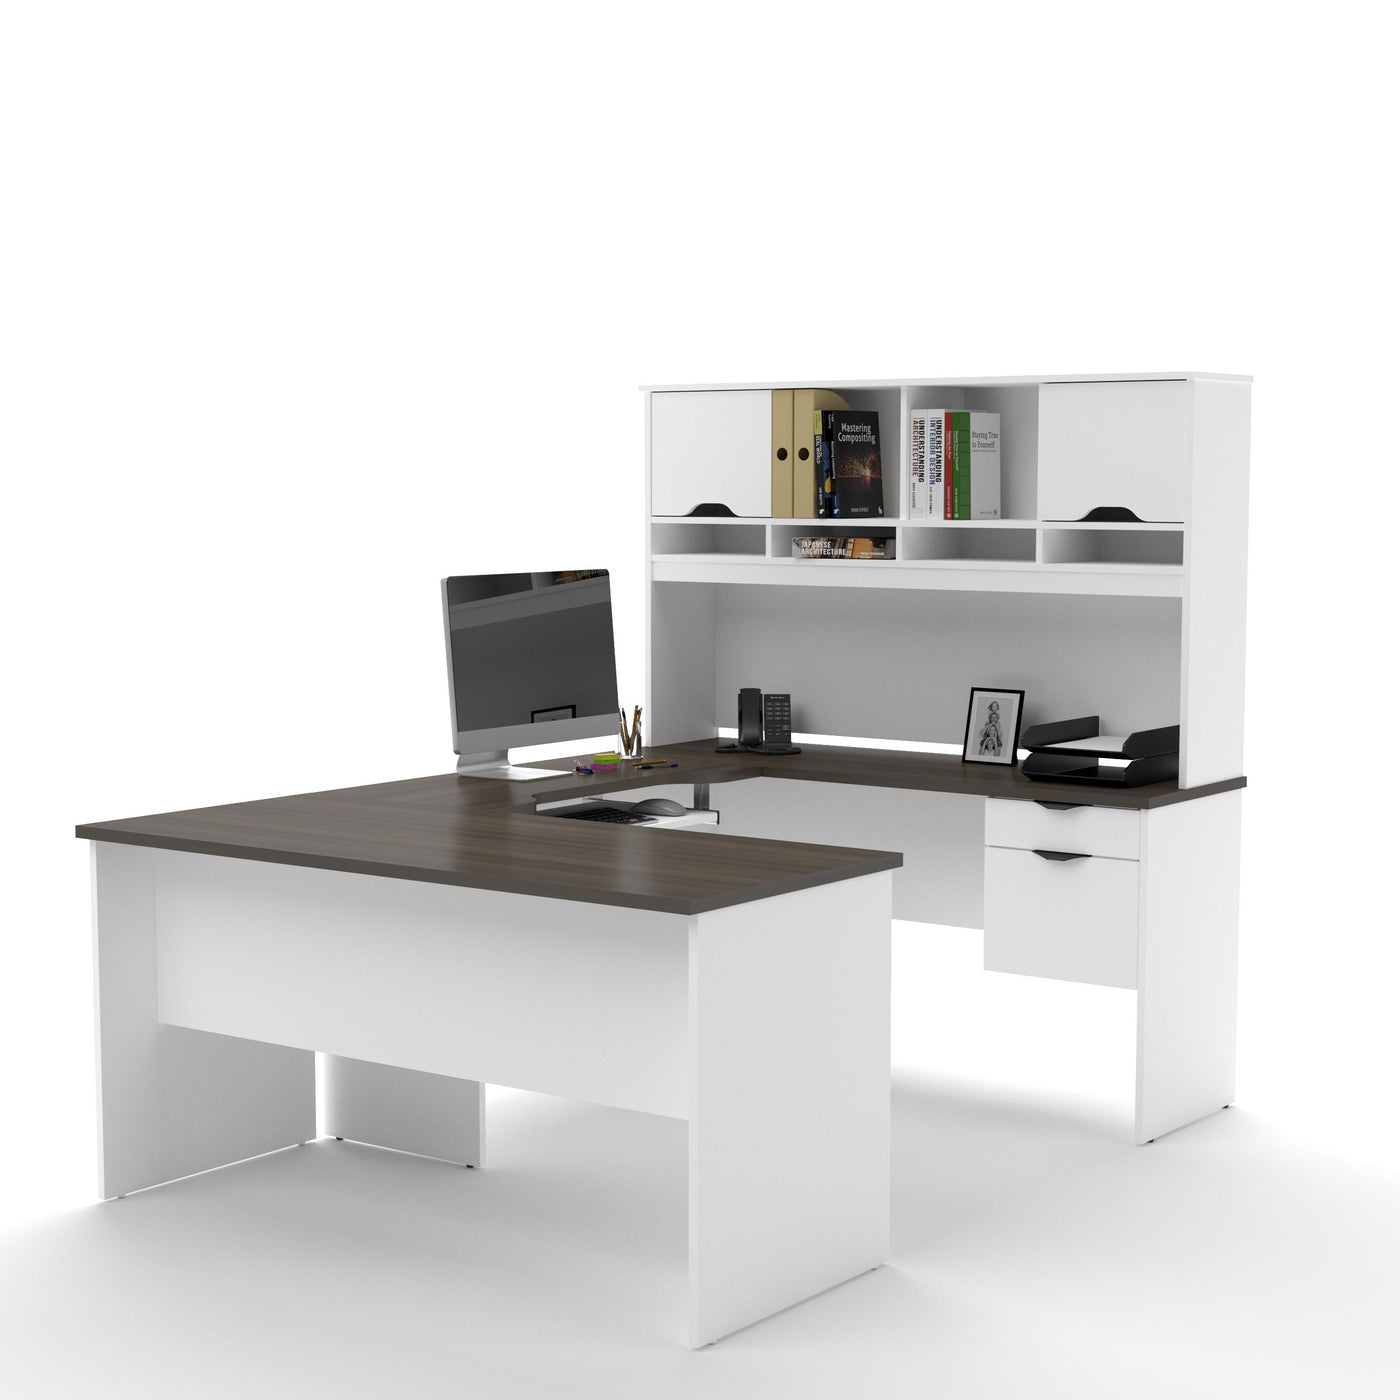 OfficeDesk.com: The Best Place To Buy Office Furniture